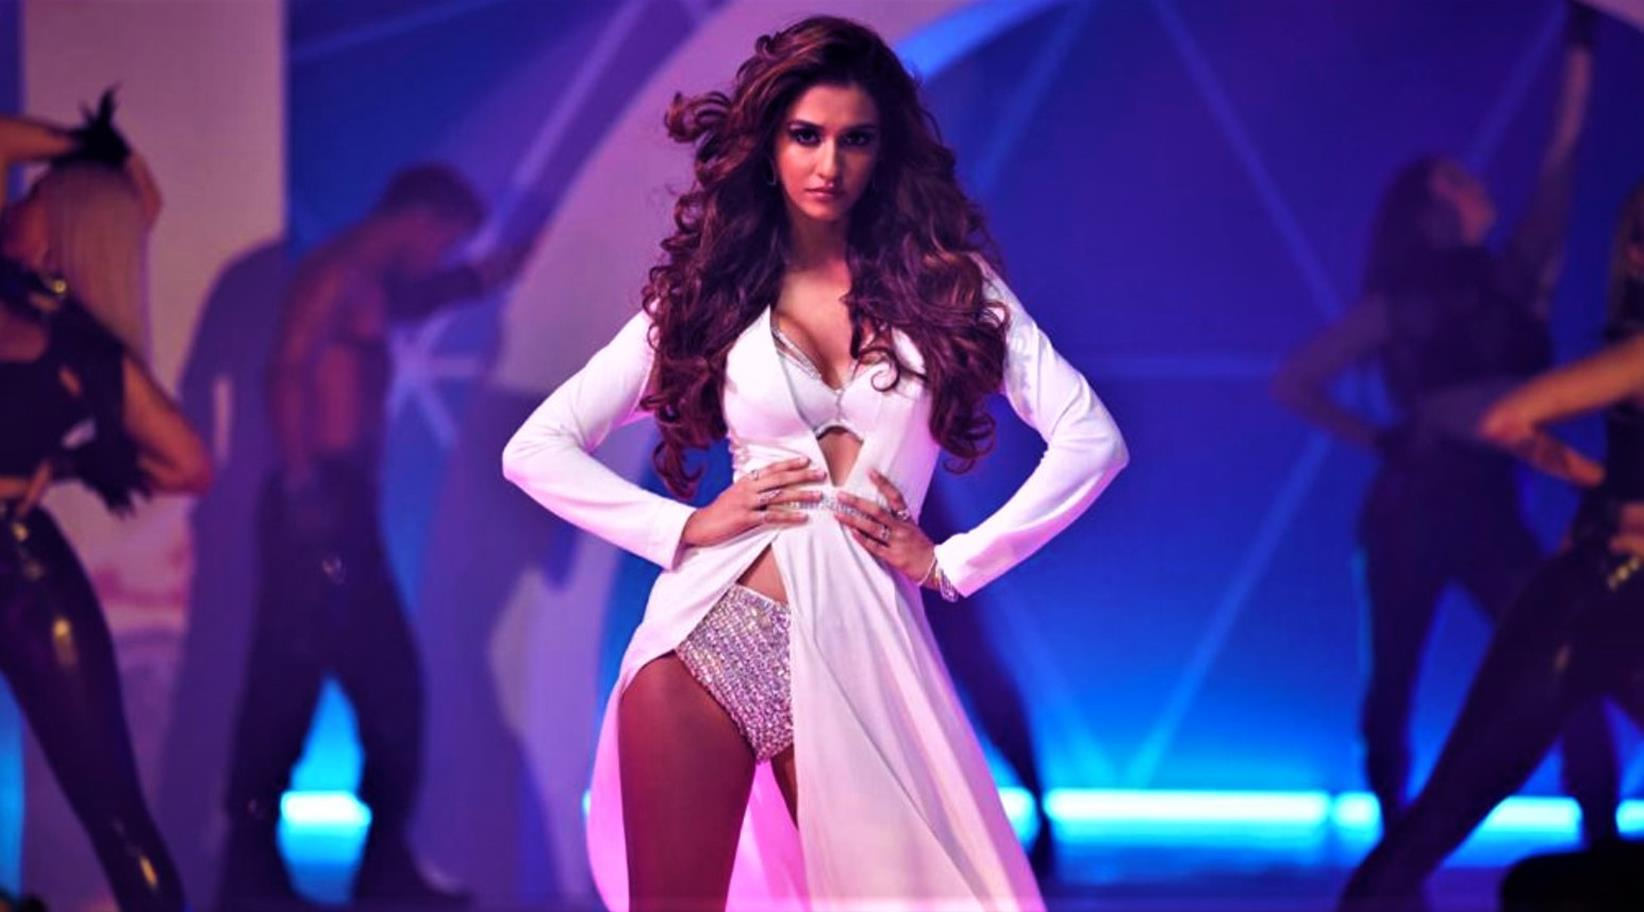 Malang Disha Patani Slays The Dance Floor With Her Killer Moves And Charismatic Avatar Abc Mundial